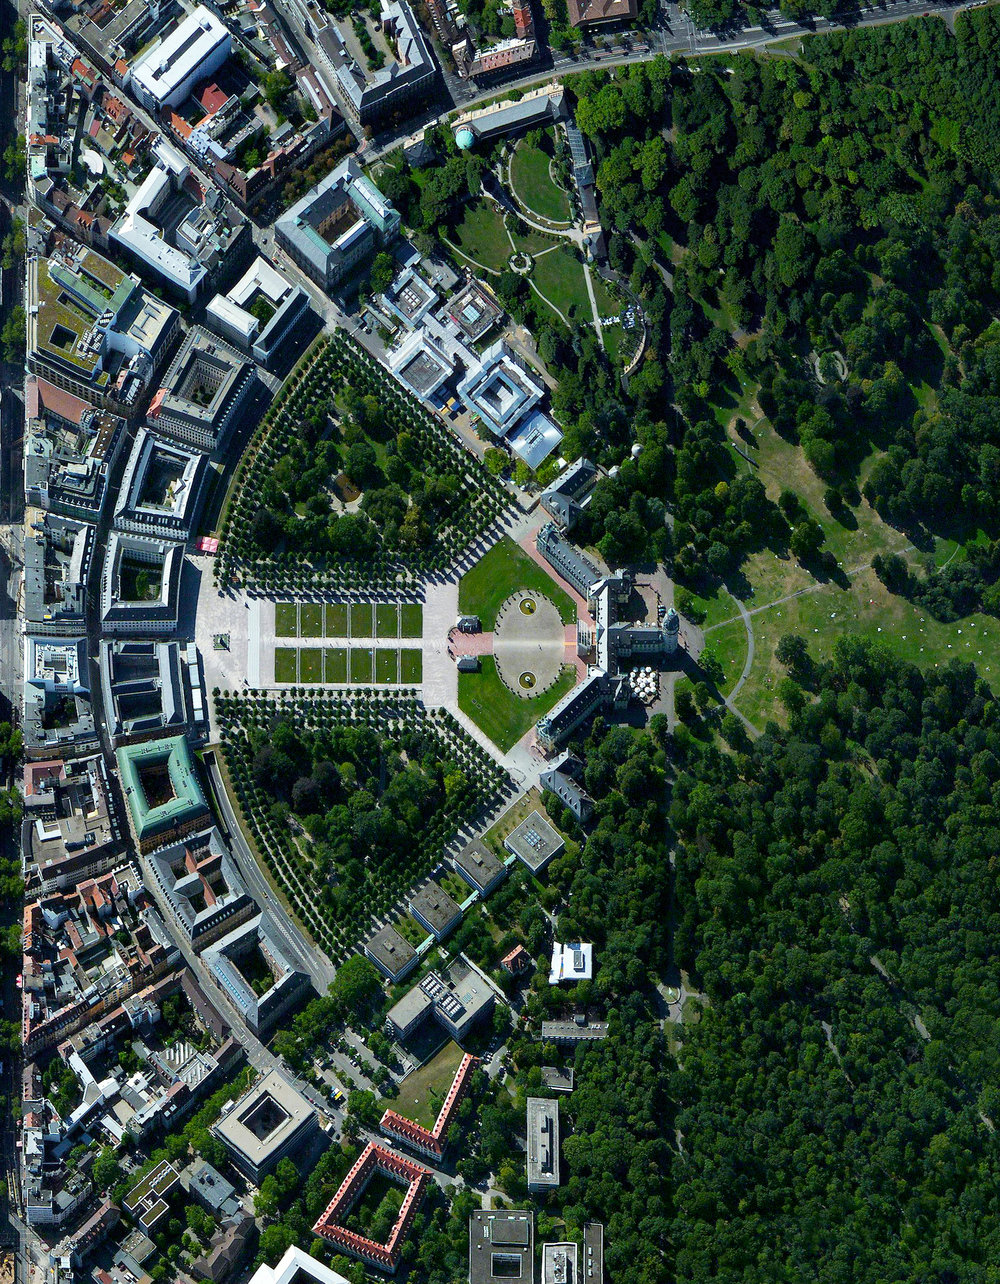 "8/24/2016 Karlsruhe, Germany 49°00′33″N 8°24′14″E   The city of Karlsruhe, Germany was planned with a palace tower at its center, surrounded by 32 radiating streets. Because the design resembled the ribs of a folding fan, the city is sometimes called the ""fan city"" or ""Fächerstadt."" Additionally, this city's urban plan gave rise to the geometry concept of ""Karlsruhe Metric"" which refers to a measure of distance that assumes travel is only possible along radial streets and along circular avenues around the center."